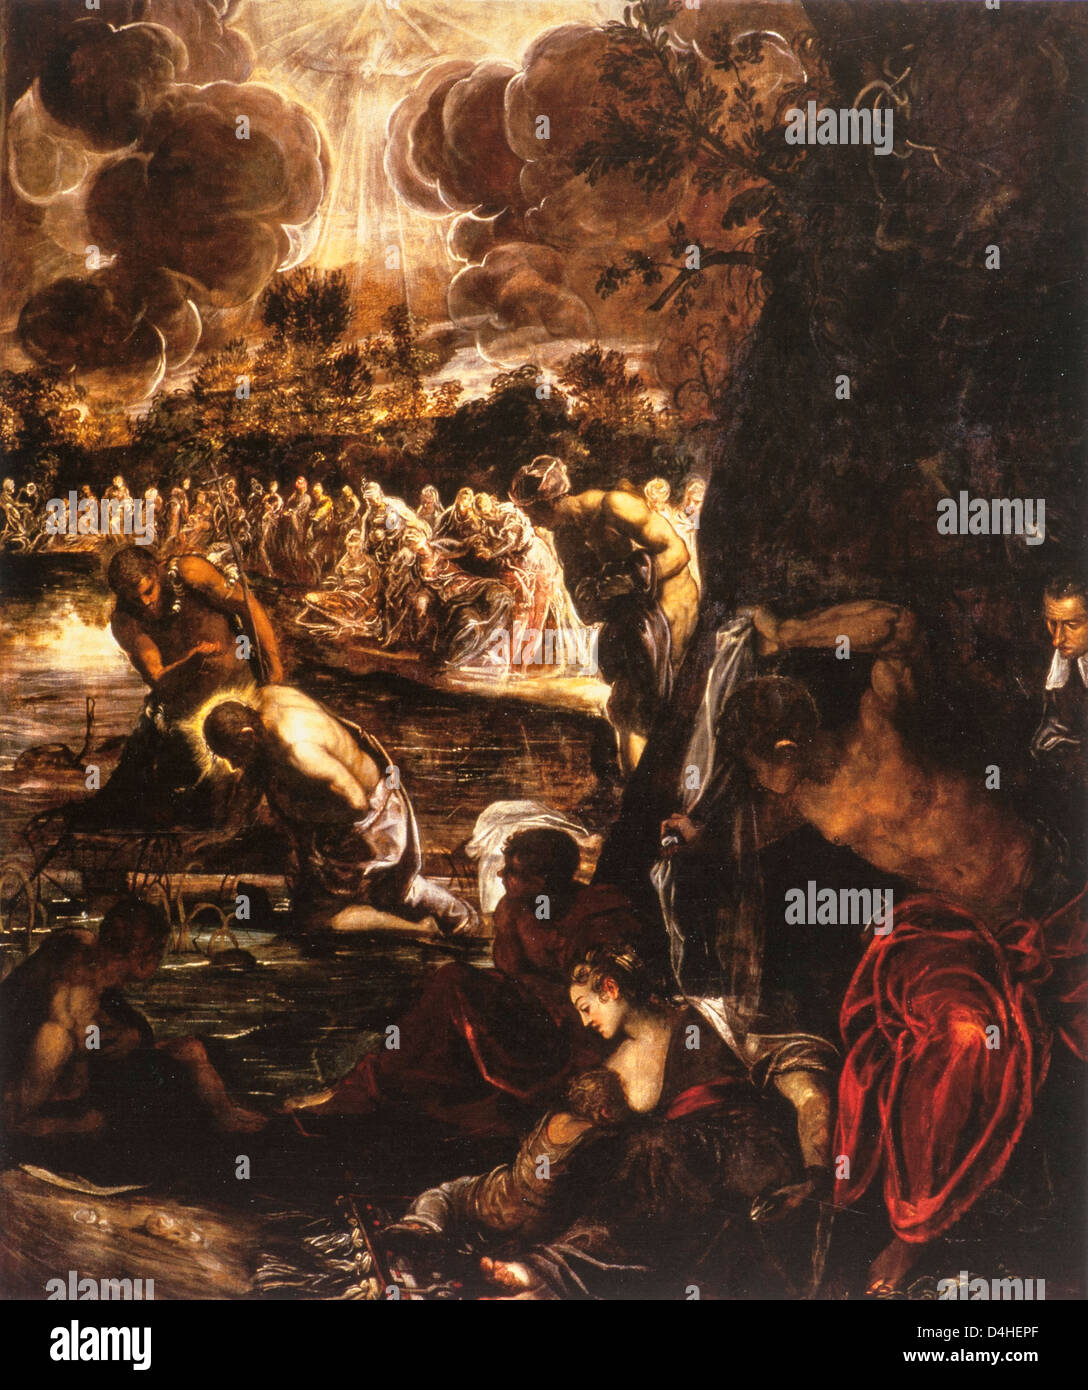 The Baptism of Christ, 1578-81 by Tintoretto at the Scuola Grande di San Rocco, Venice - Stock Image